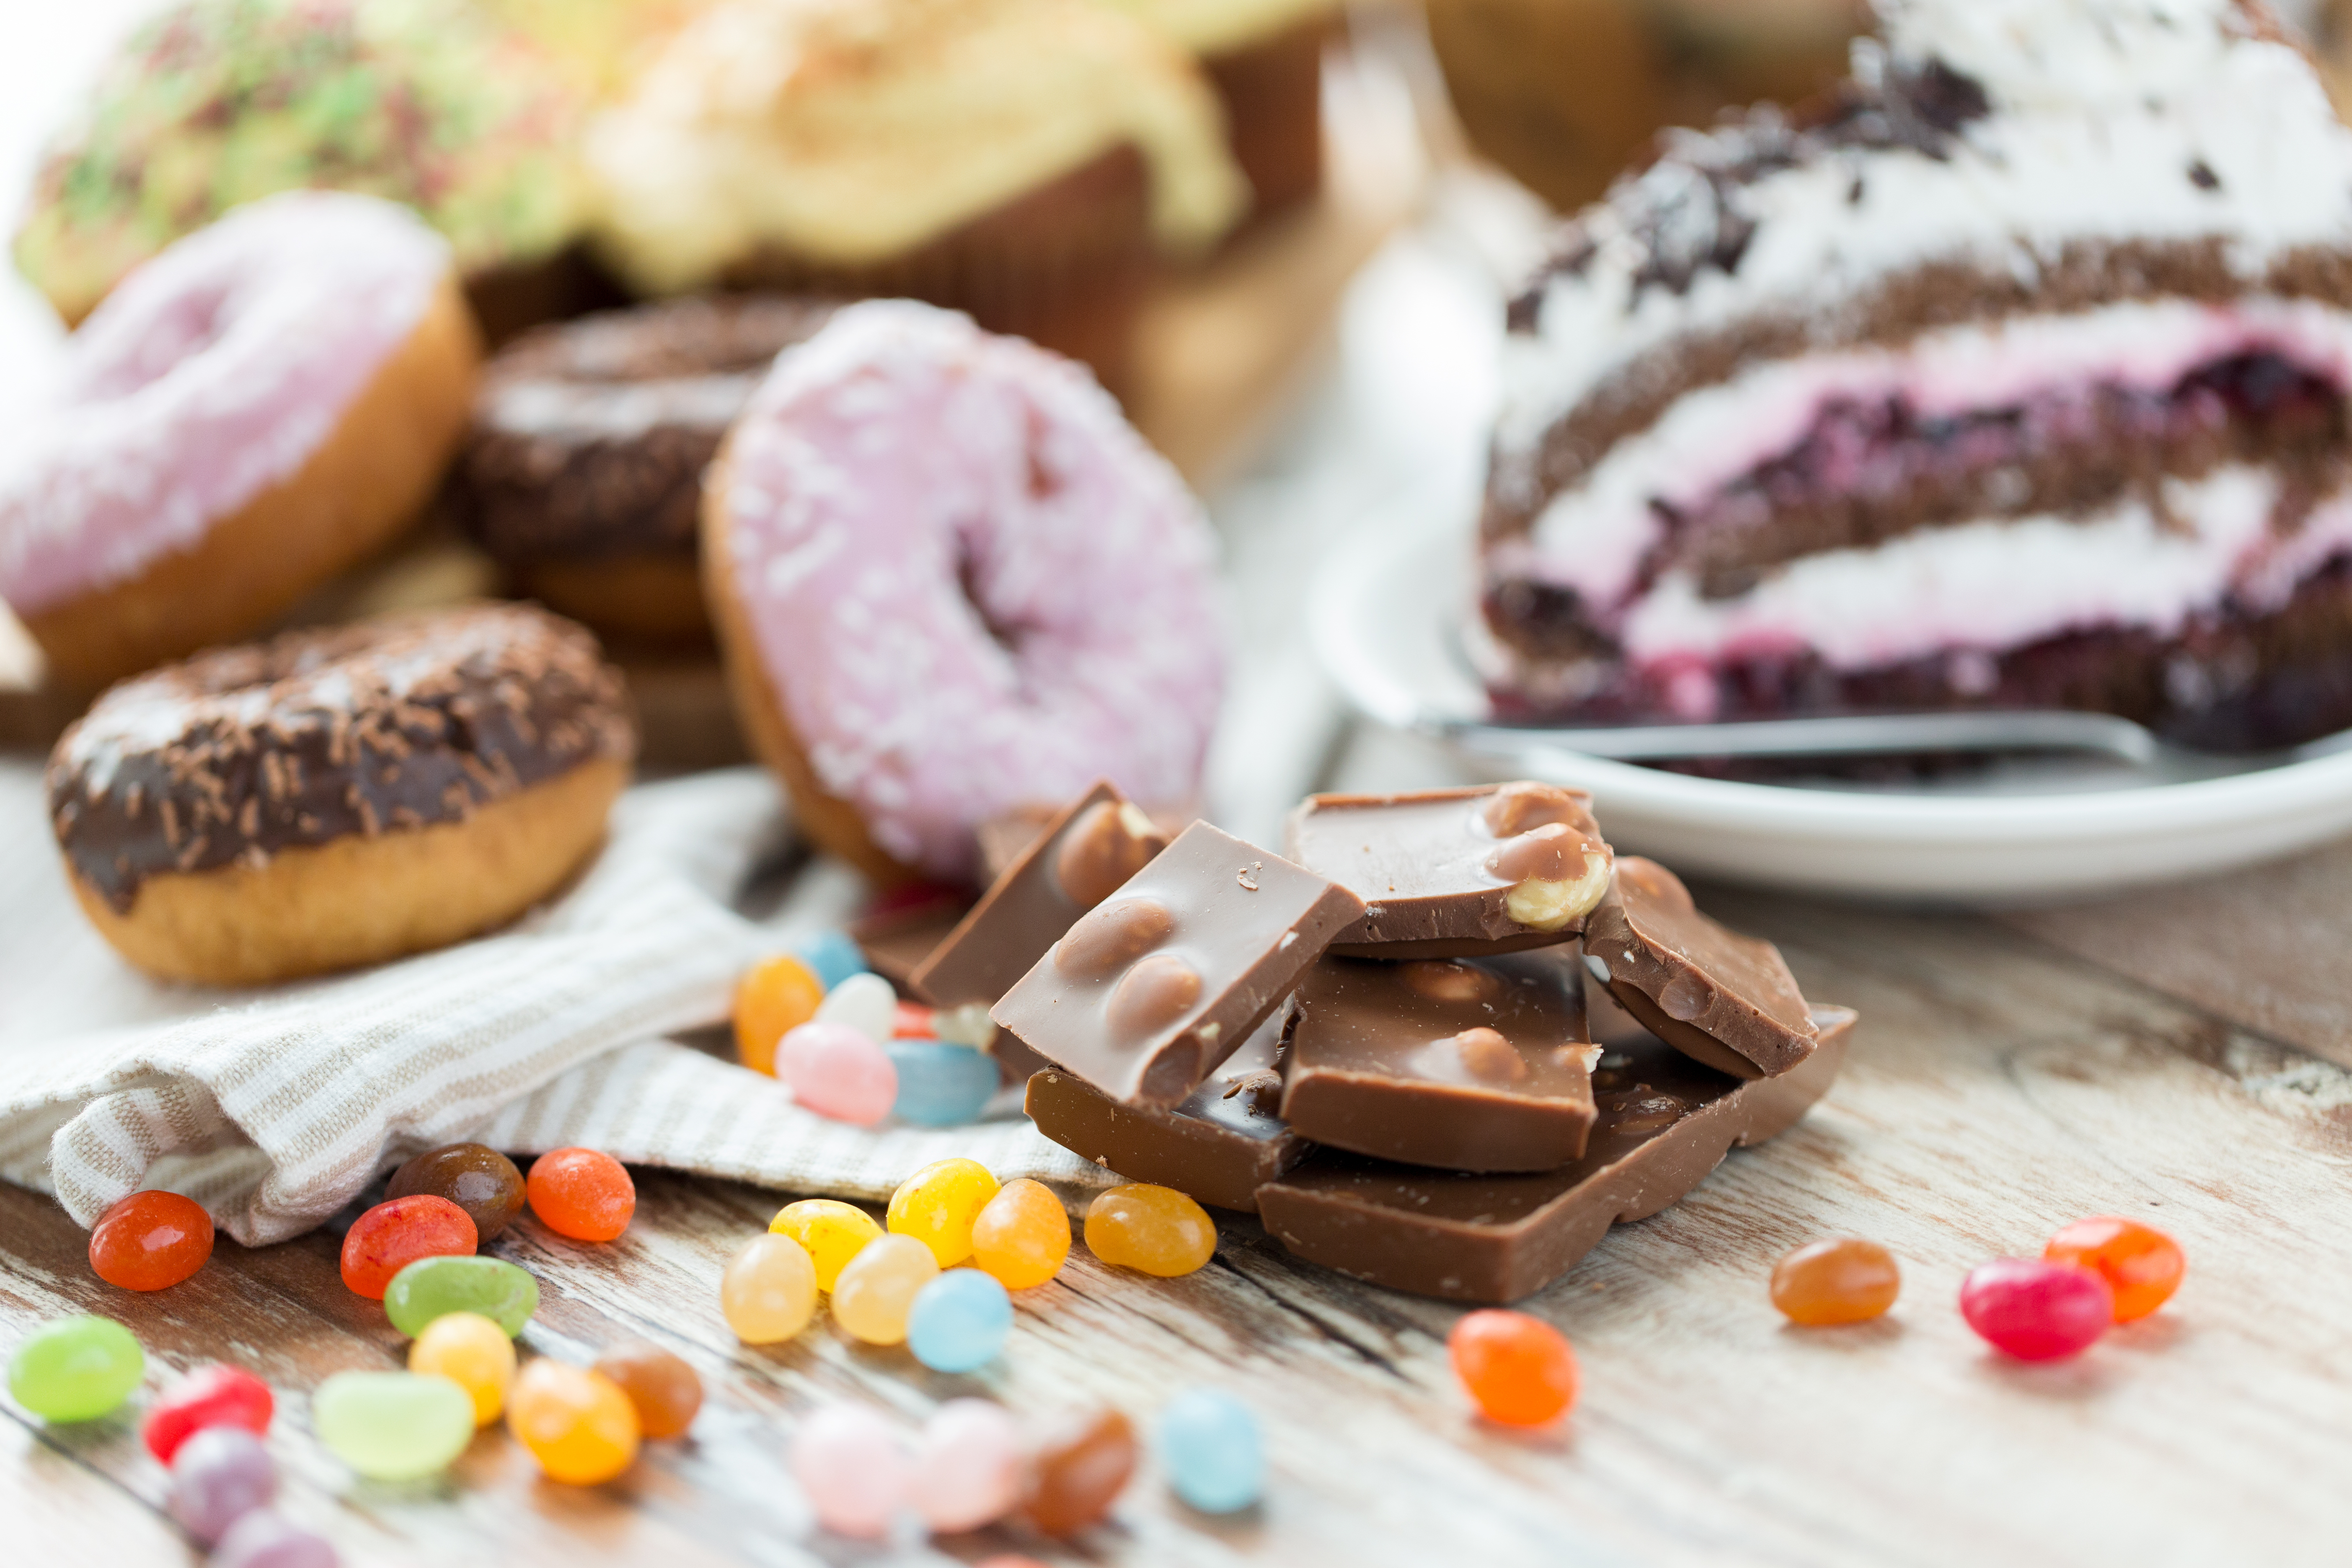 candy and sweets on a table, healthy skin after 40